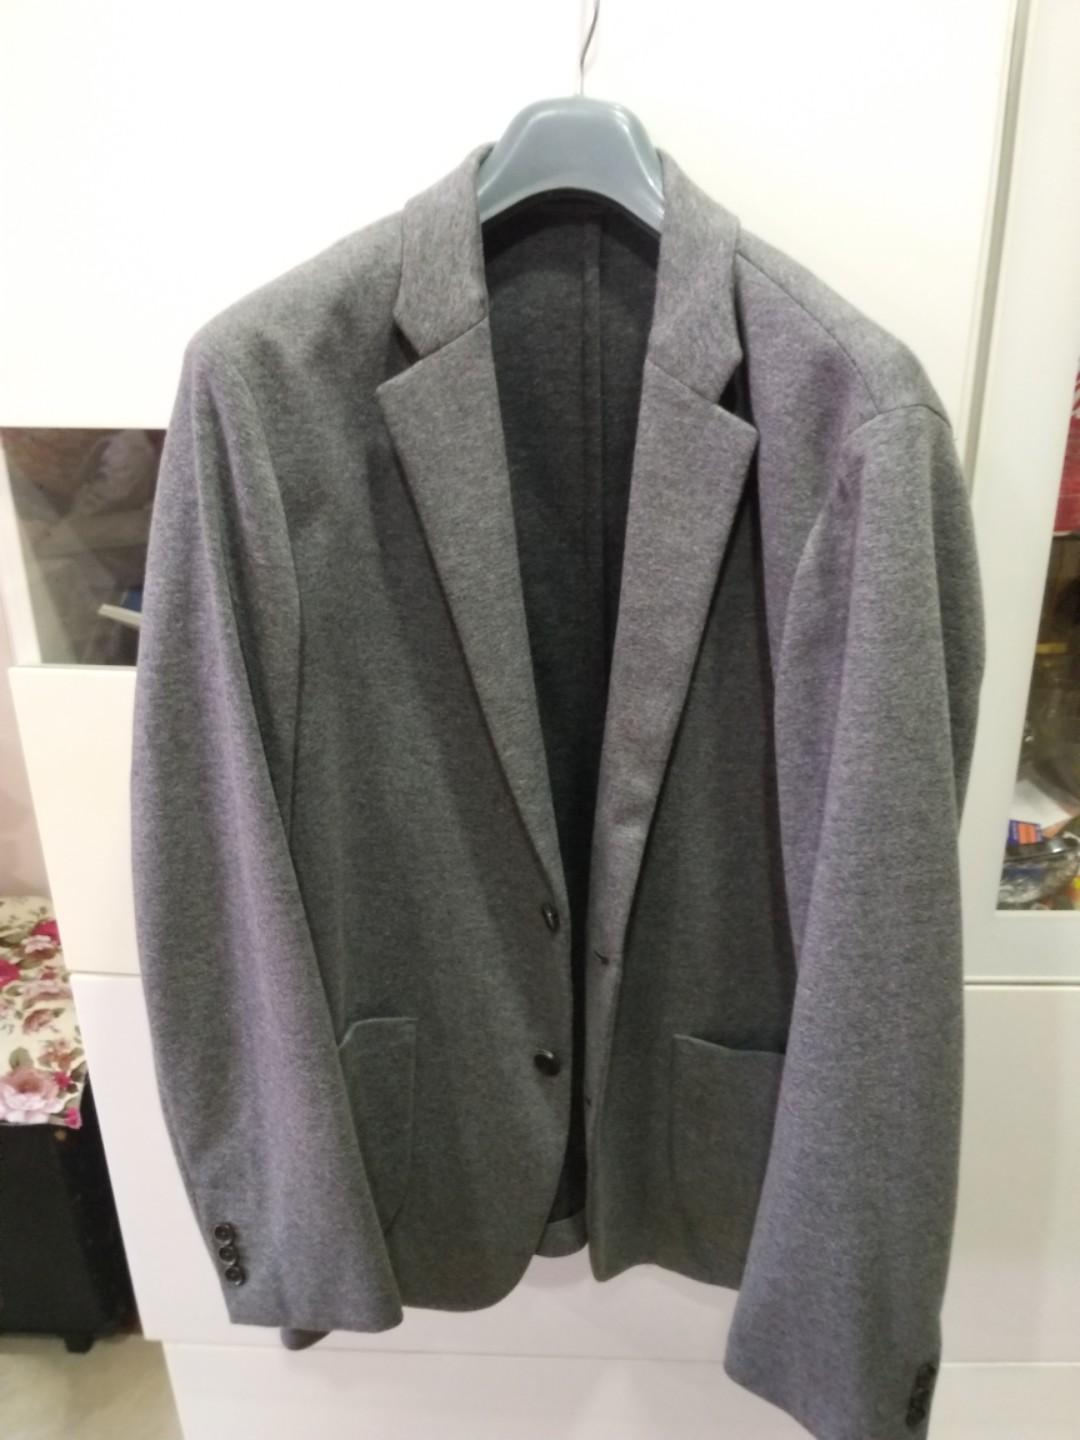 Uniqlo casual jacket